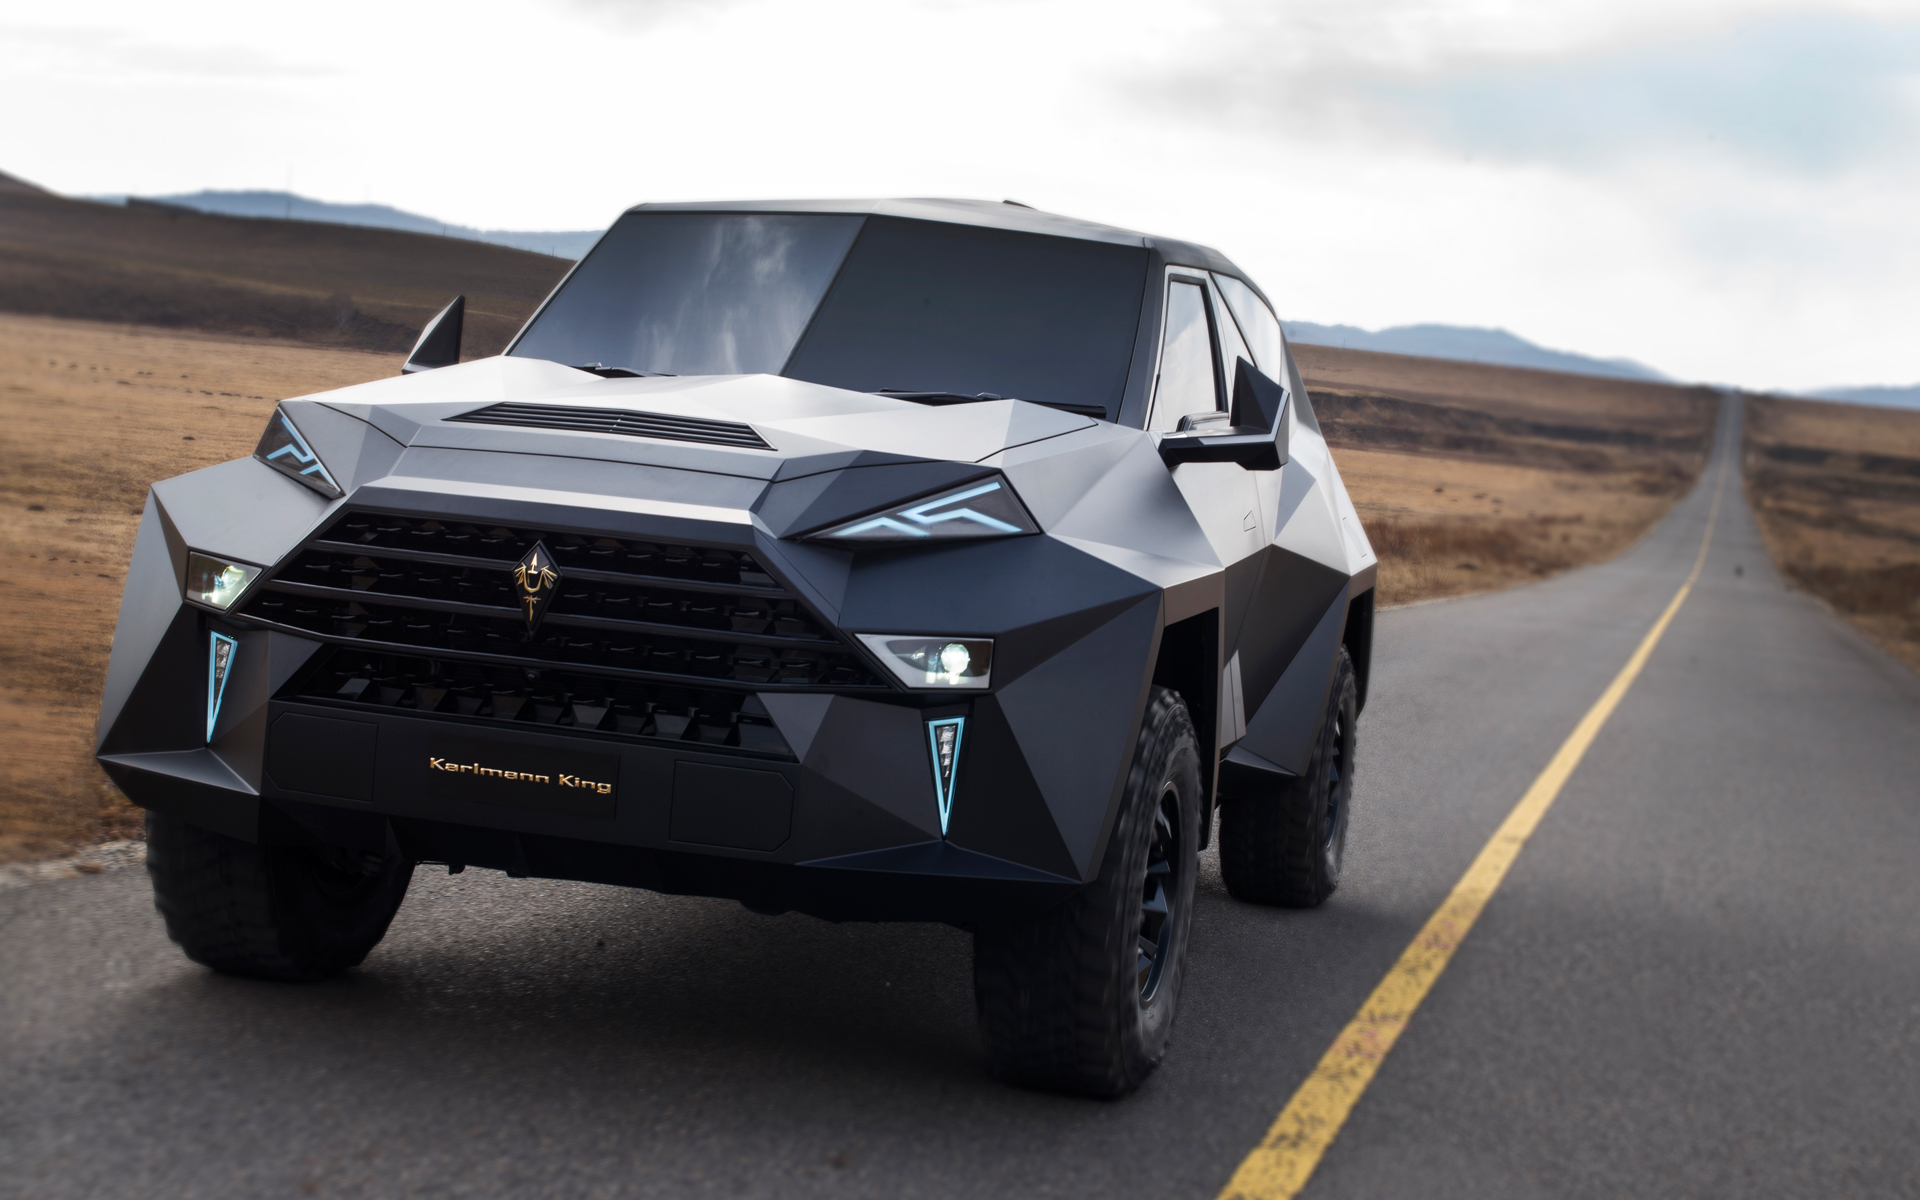 karlmann-king-custom-suv-expensive-7